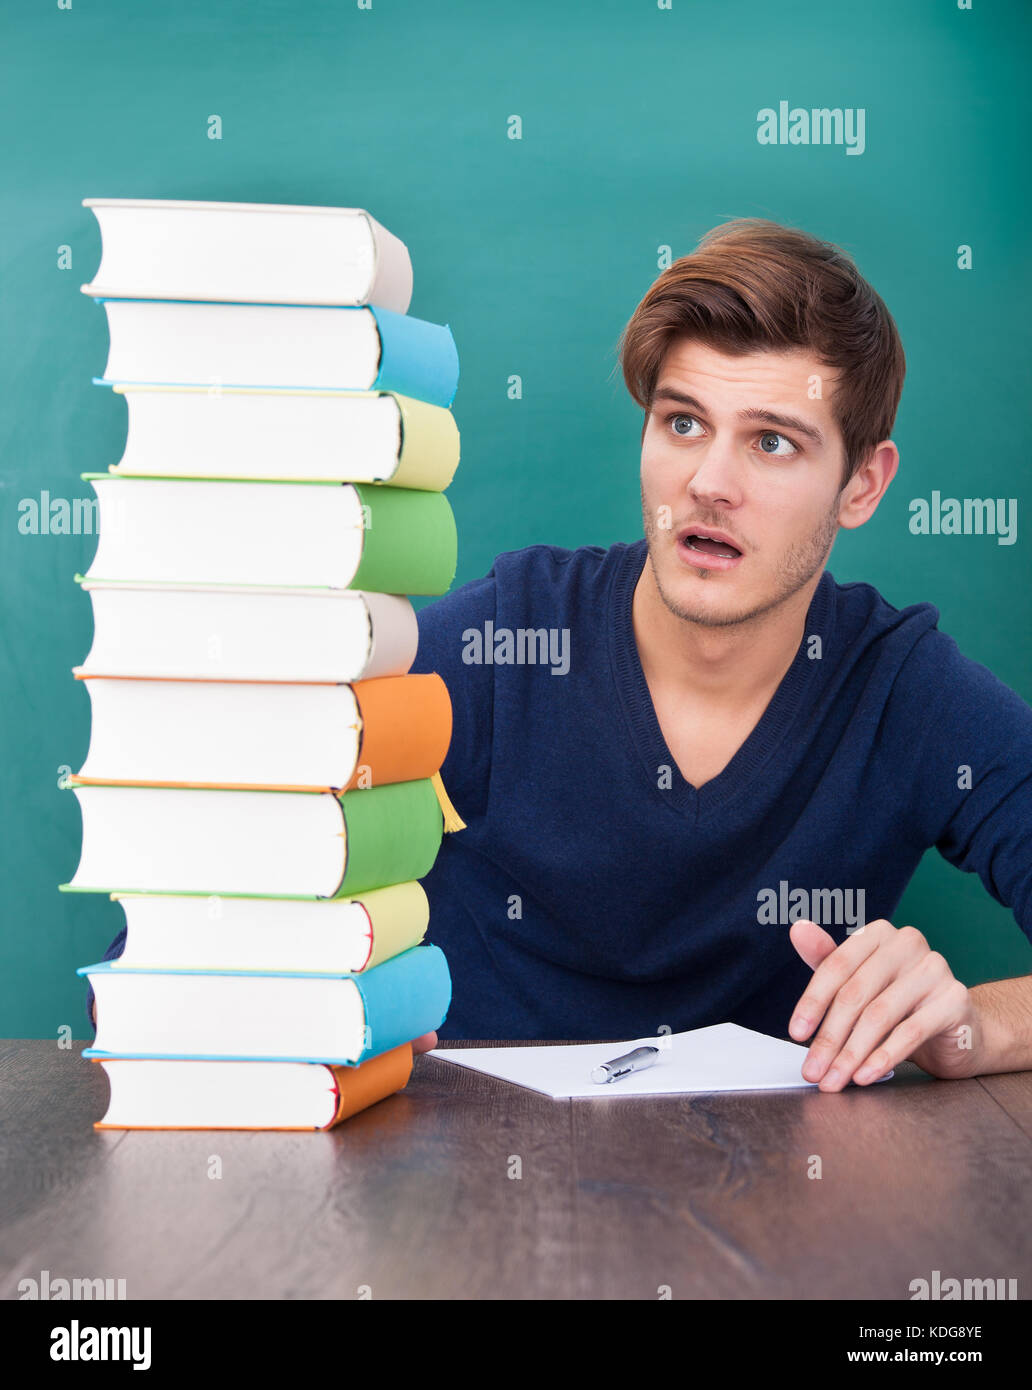 Portrait Of A Shocked Male Student Looking At Stack Of Books - Stock Image